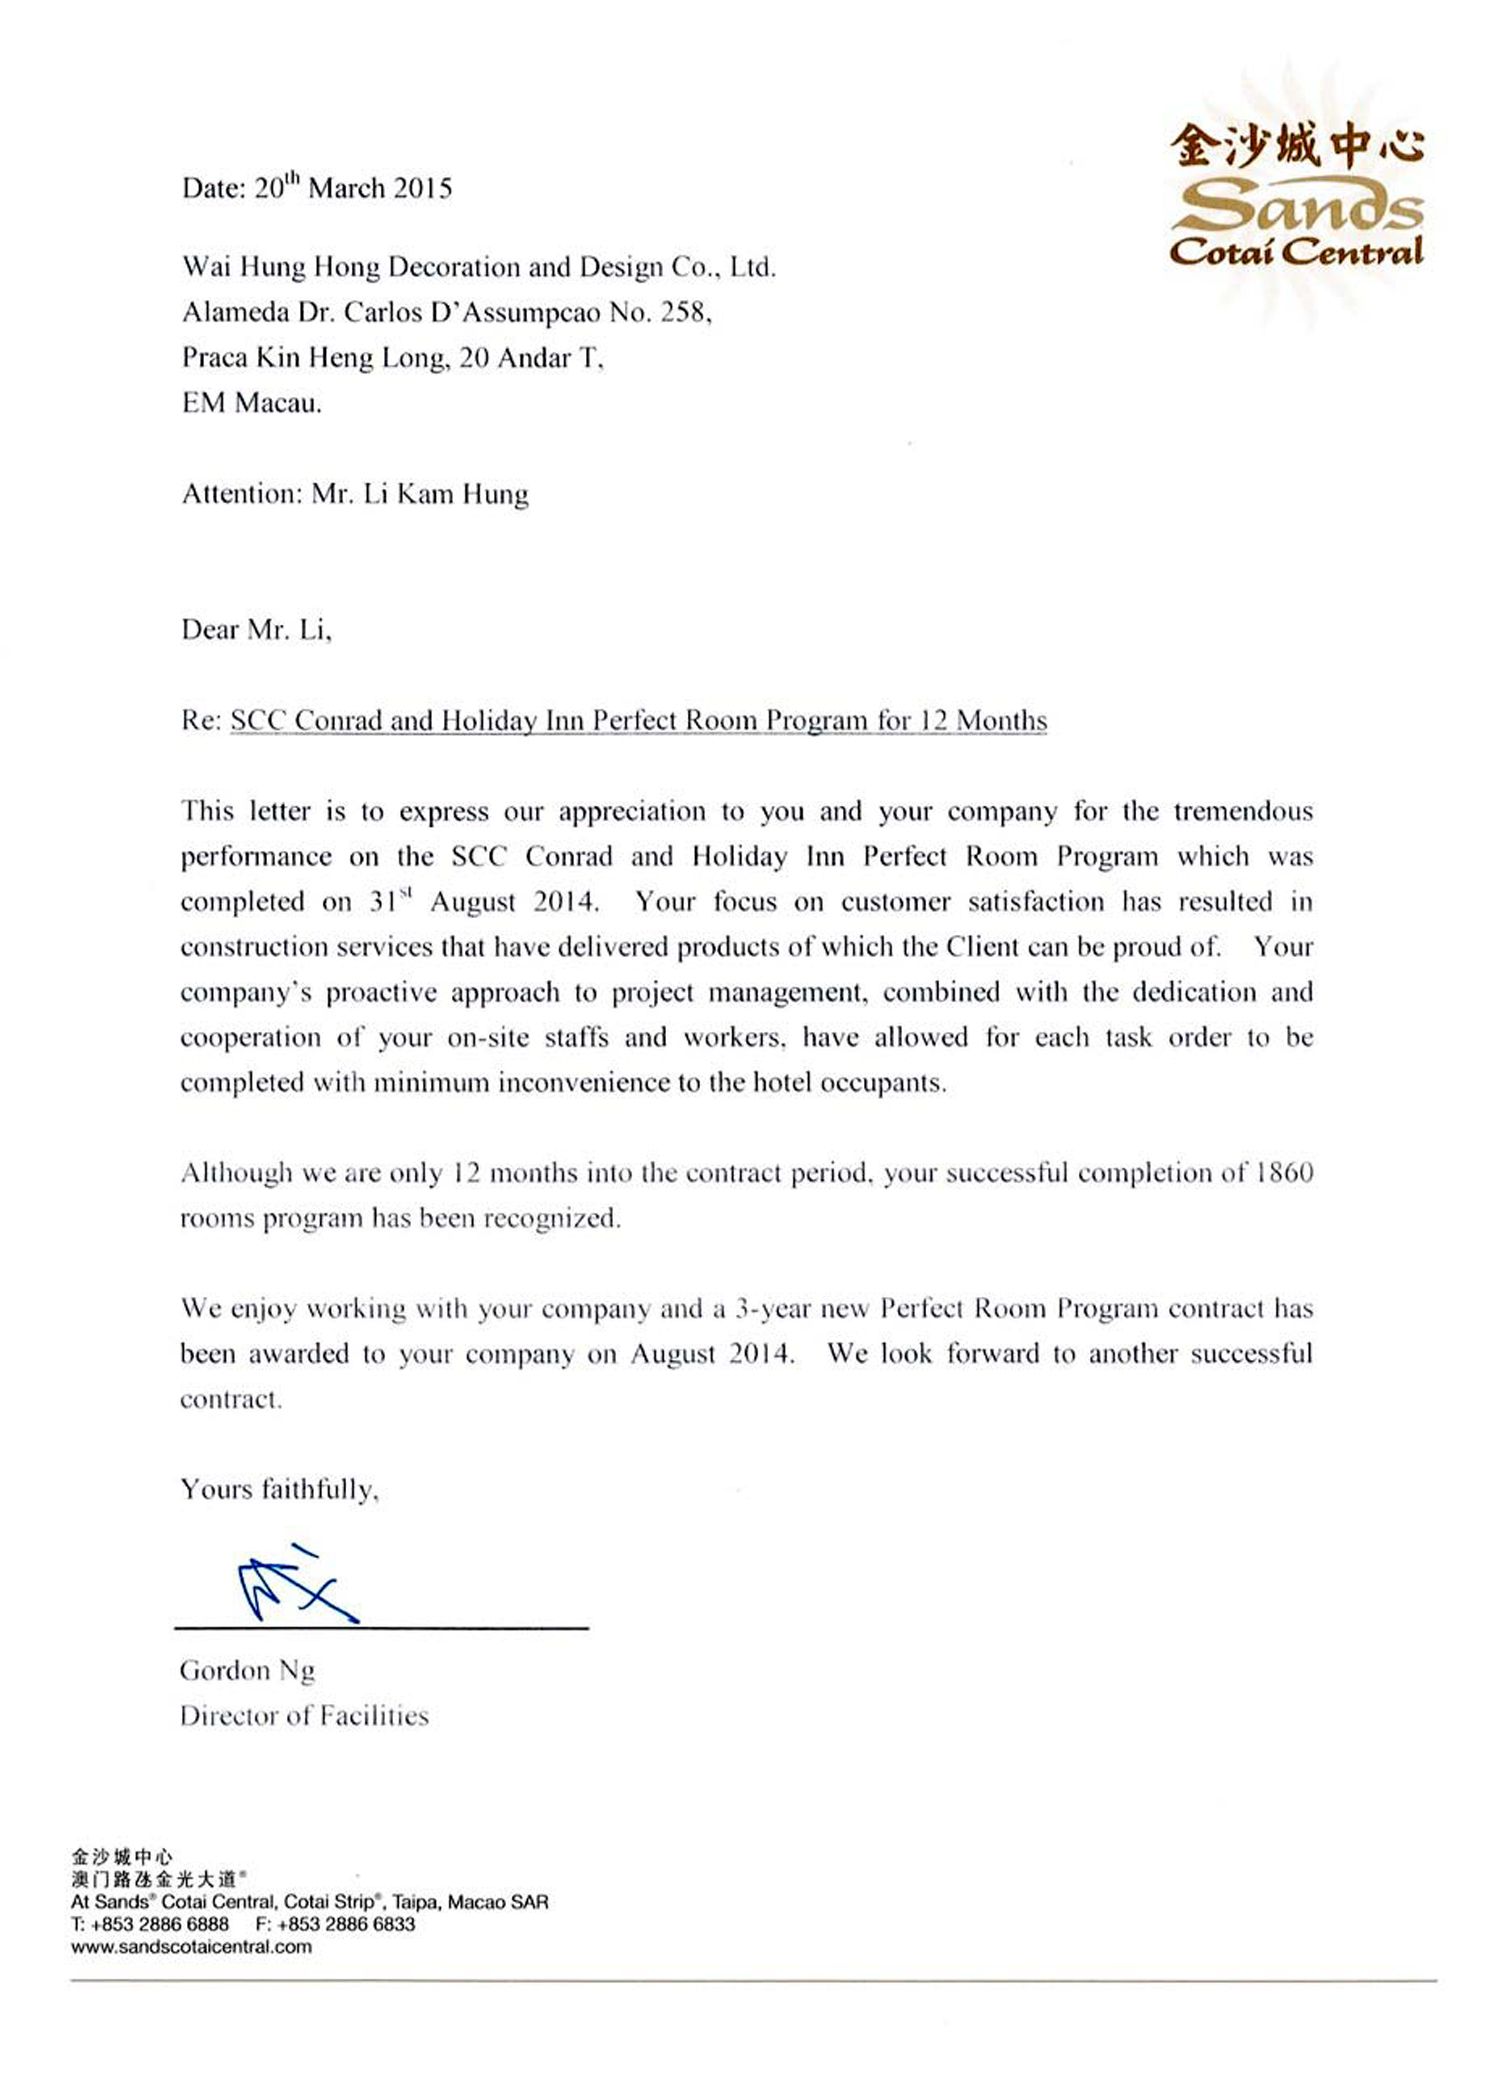 SANDS COTAI CENTRAL - LETTER OF APPRECIATION